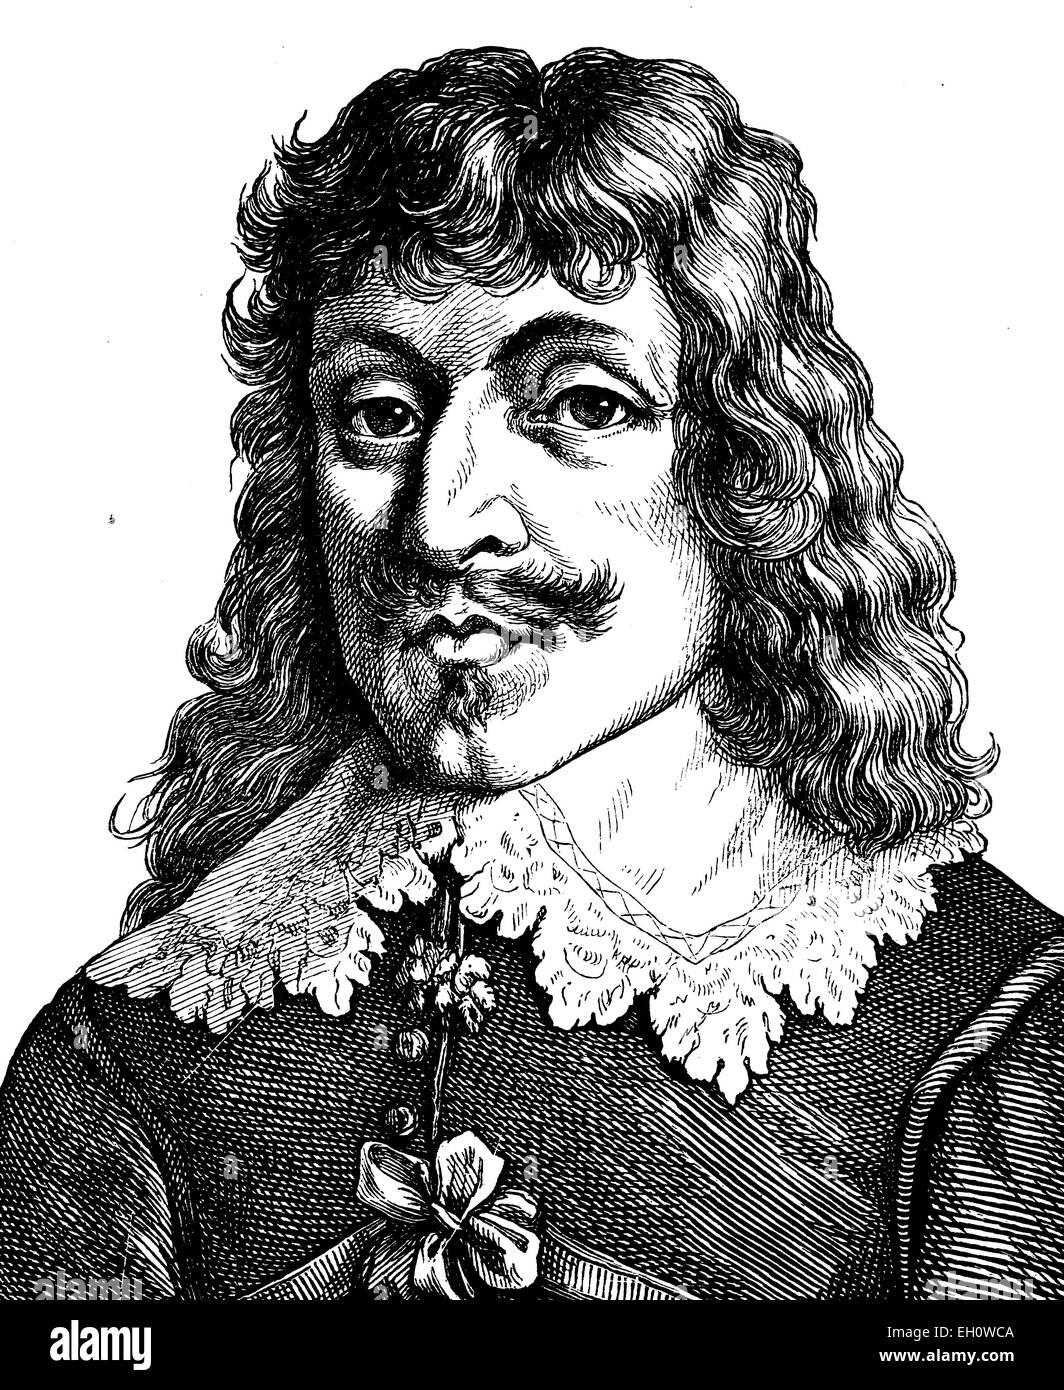 Digital improved image of Paul Flemming, Fleming, 1609 - 1640, poet, physician and writer, portrait, historical - Stock Image